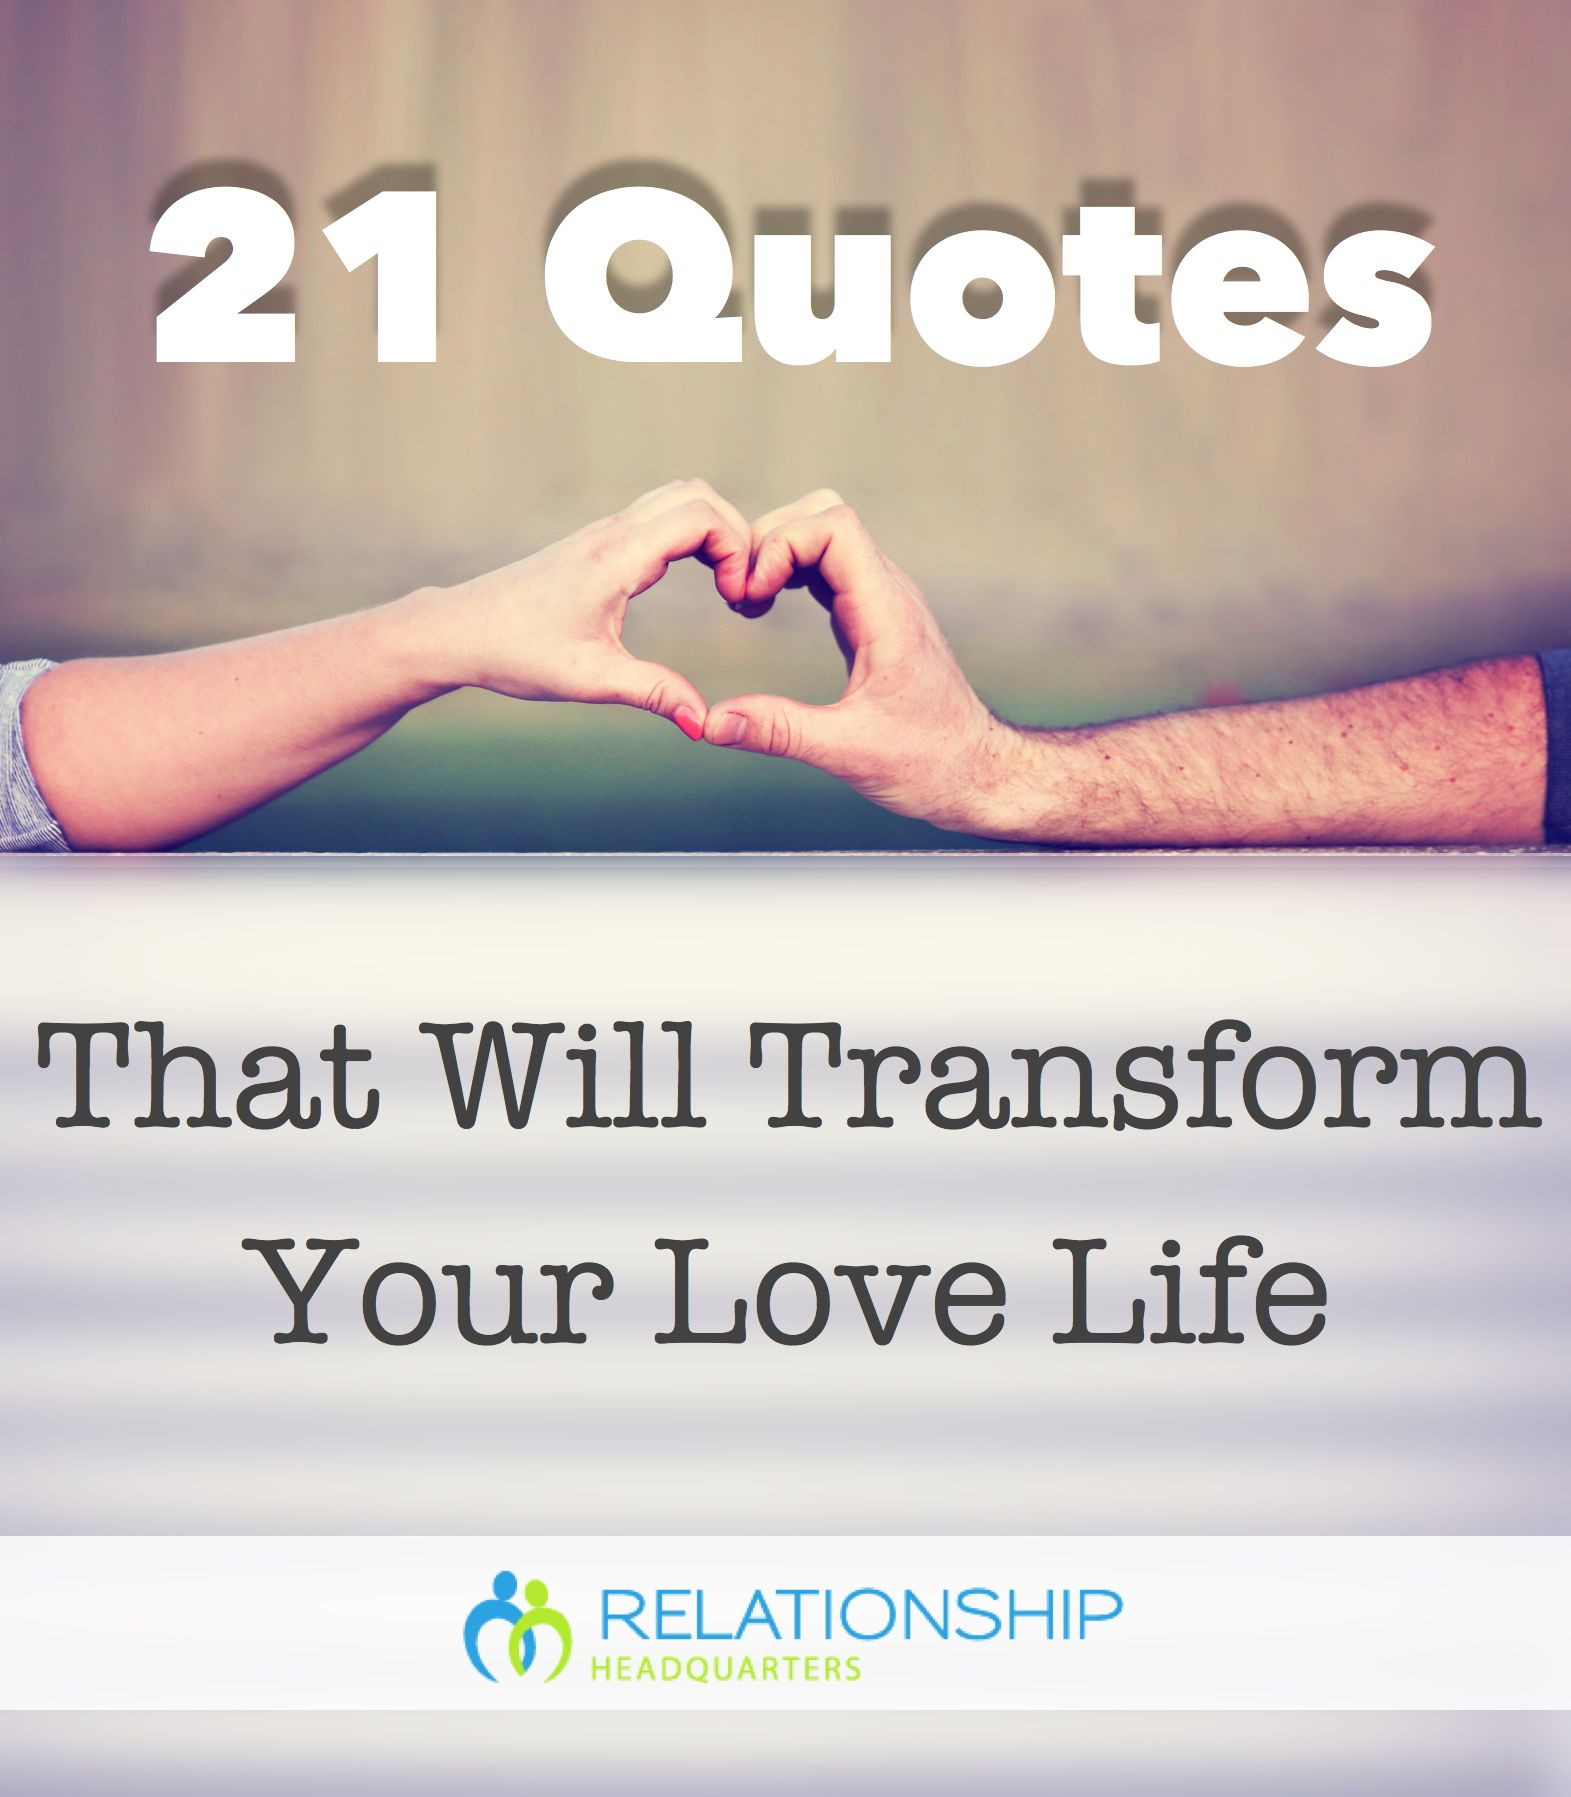 Love And Relationships Quotes 21 Powerful Relationship Quotes That Will Transform Your Love Life